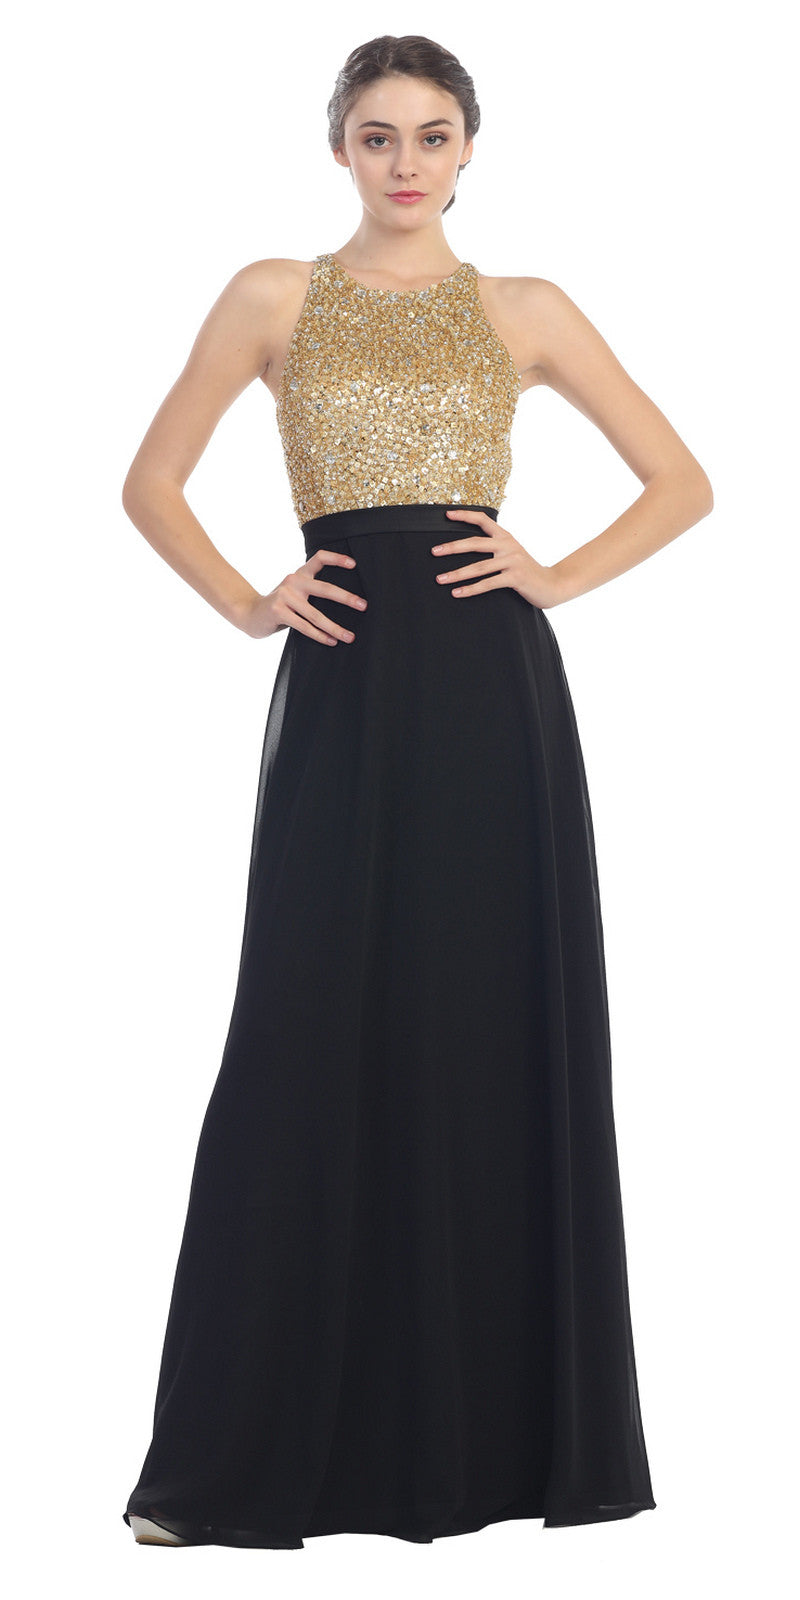 High Neckline Evening Gown Navy Blue Silver Sequin Top Chiffon Skirt ...